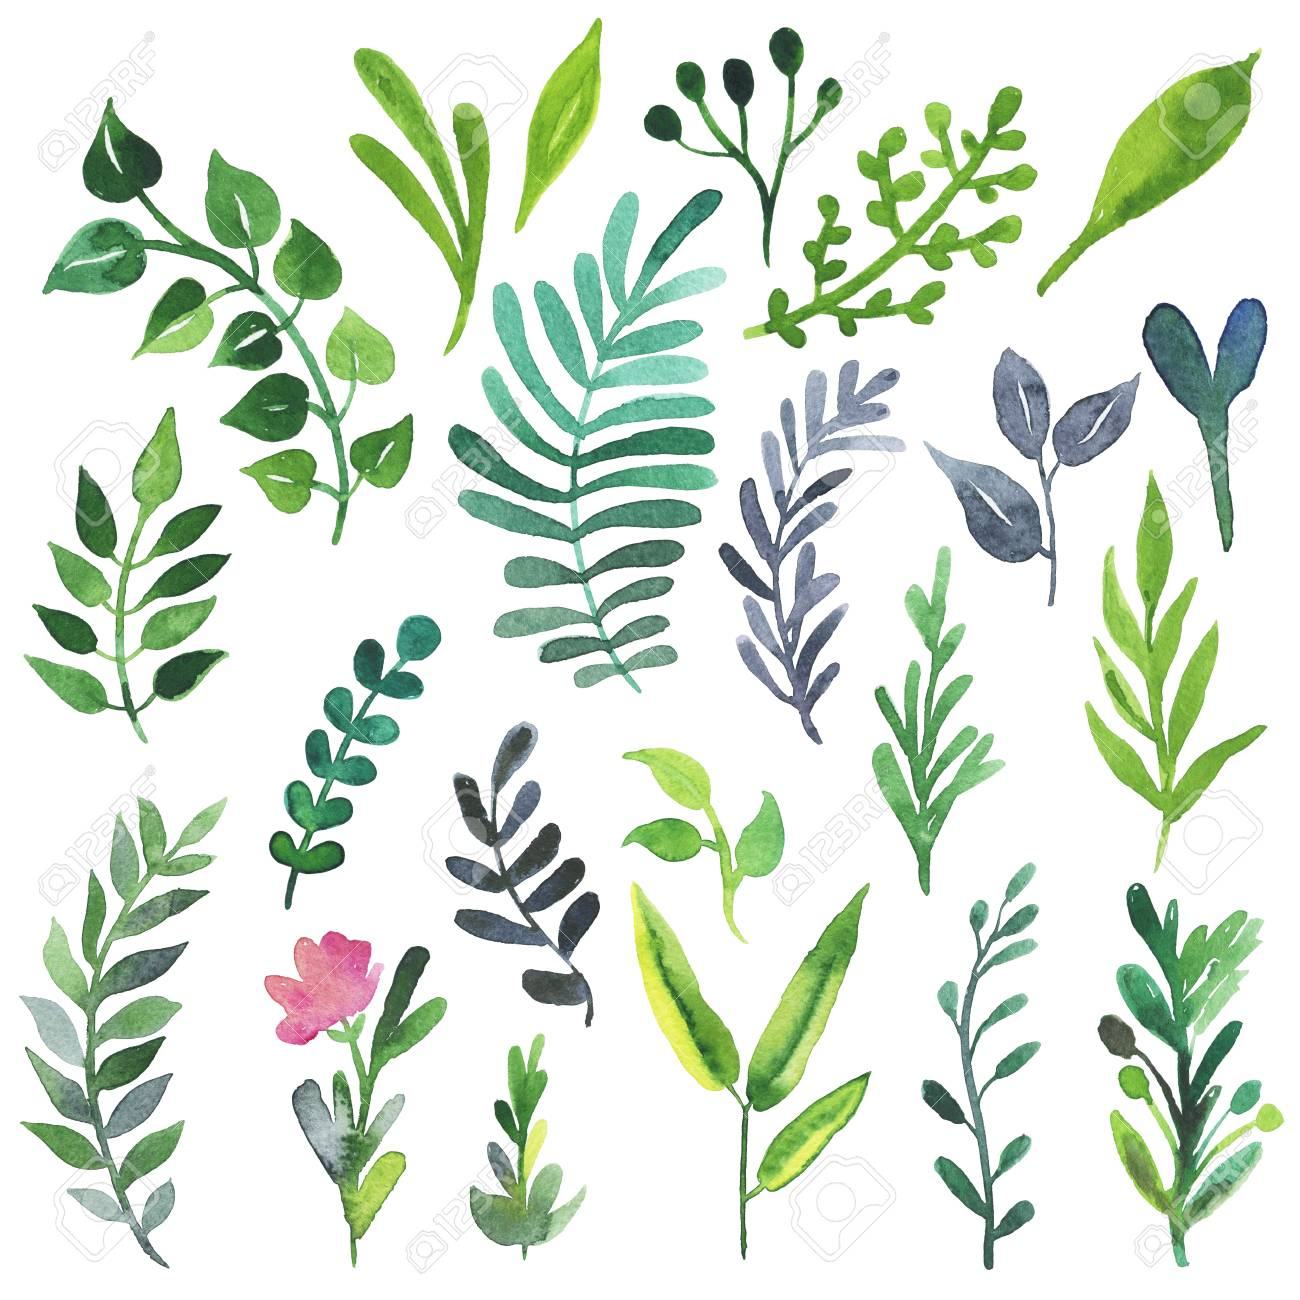 Hand Painted Watercolor Plants And Flowers Vintage Illustrations Stock Photo Picture And Royalty Free Image Image 58219303